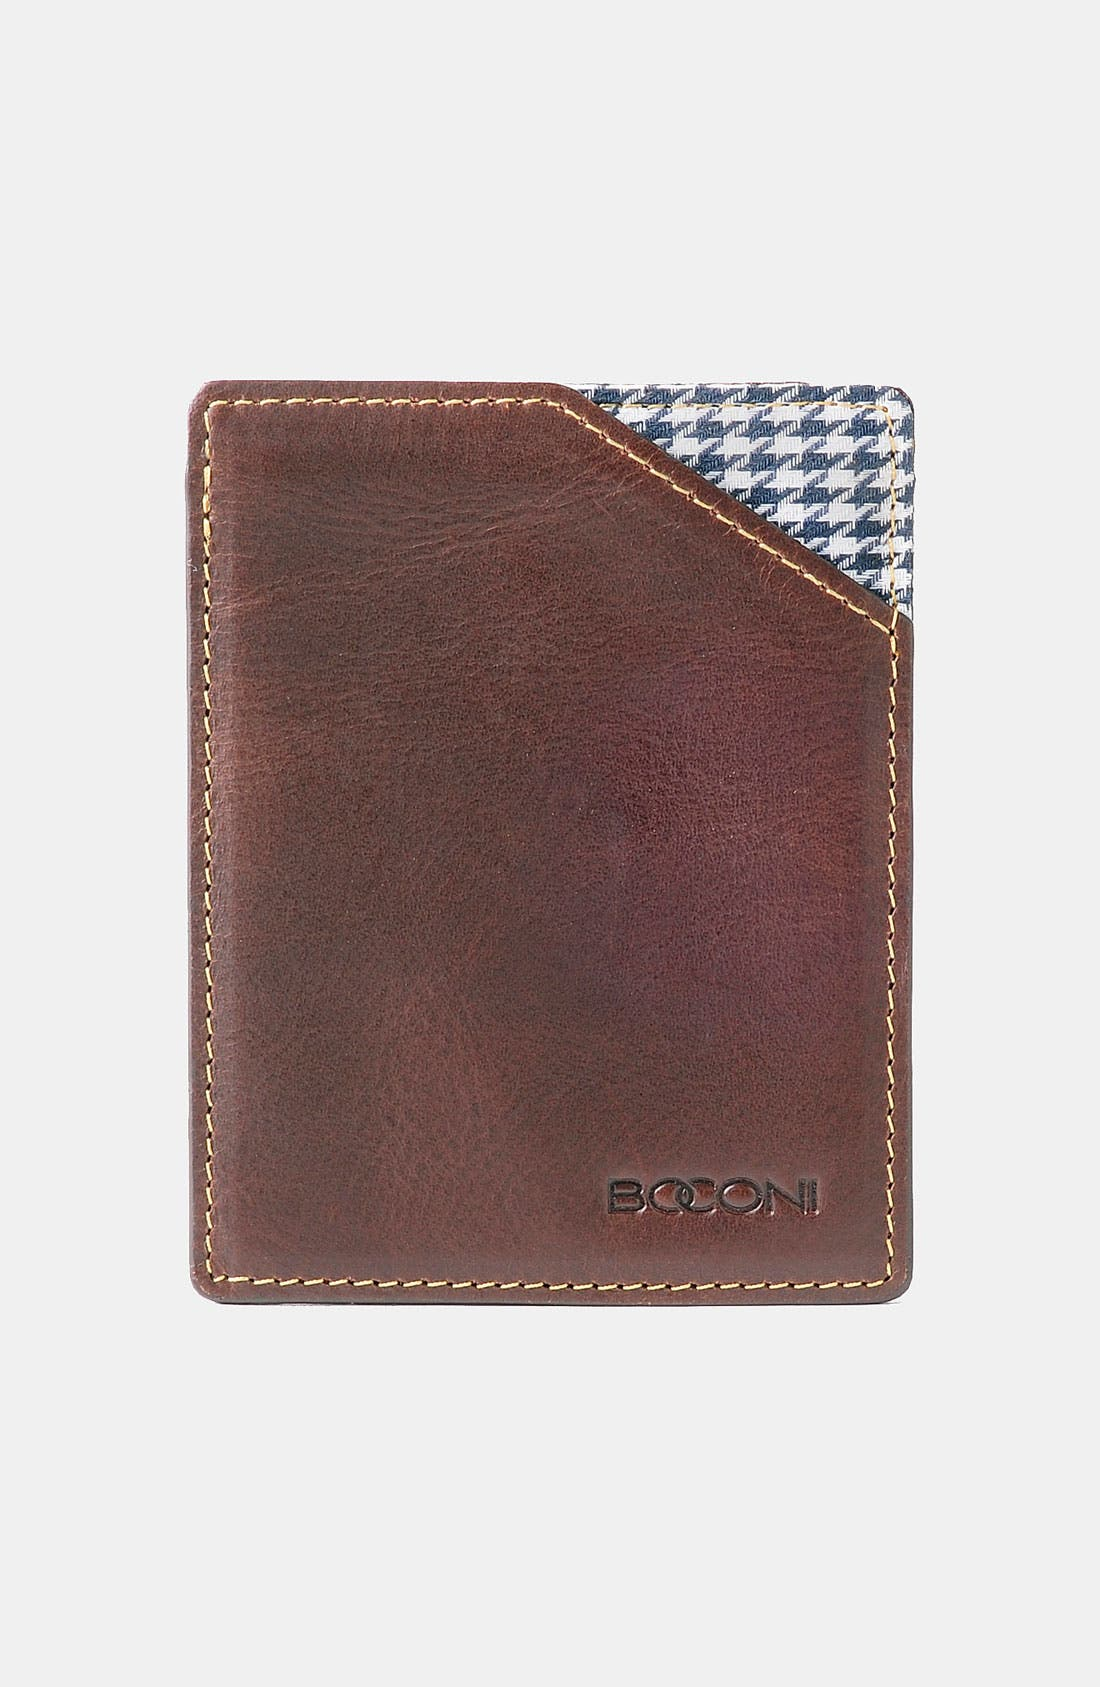 Main Image - Boconi 'Bryant' RFID Blocker Card Case